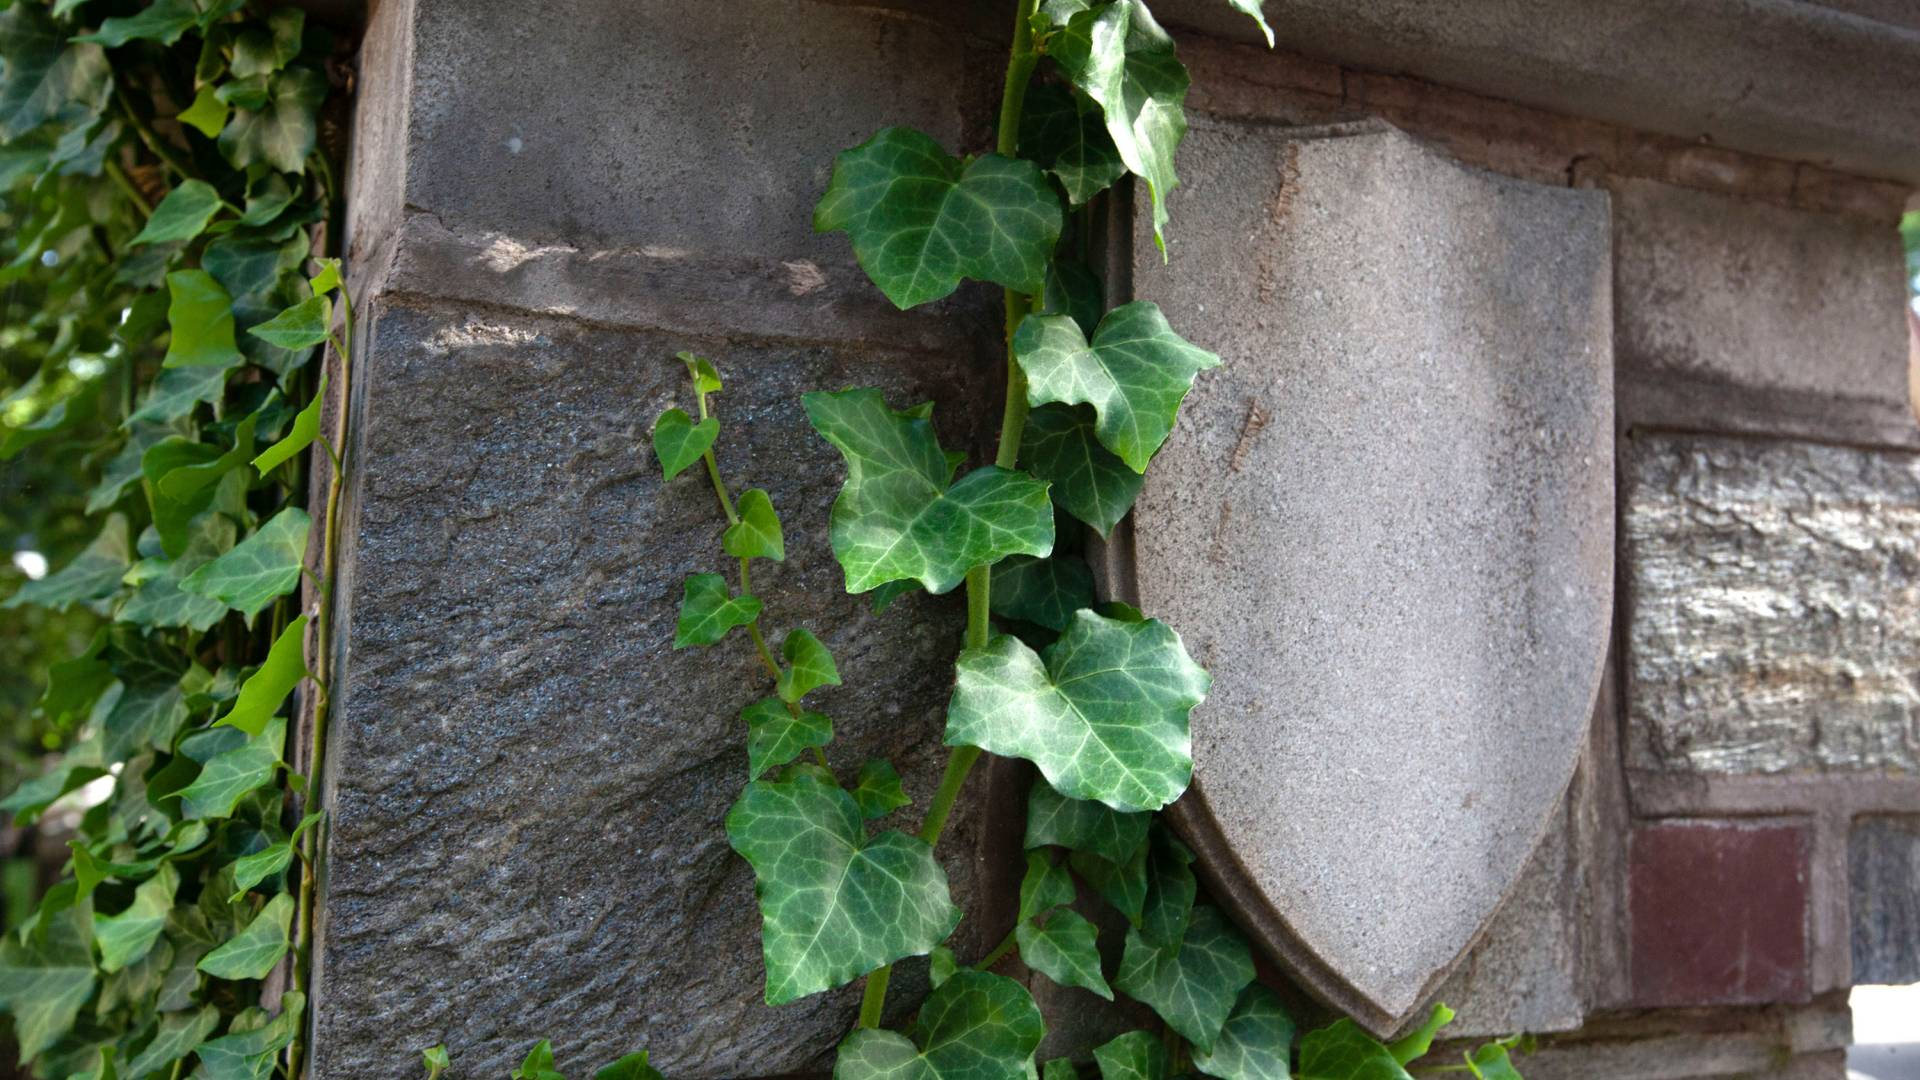 Ivy grows around a shield detail in a stone wall